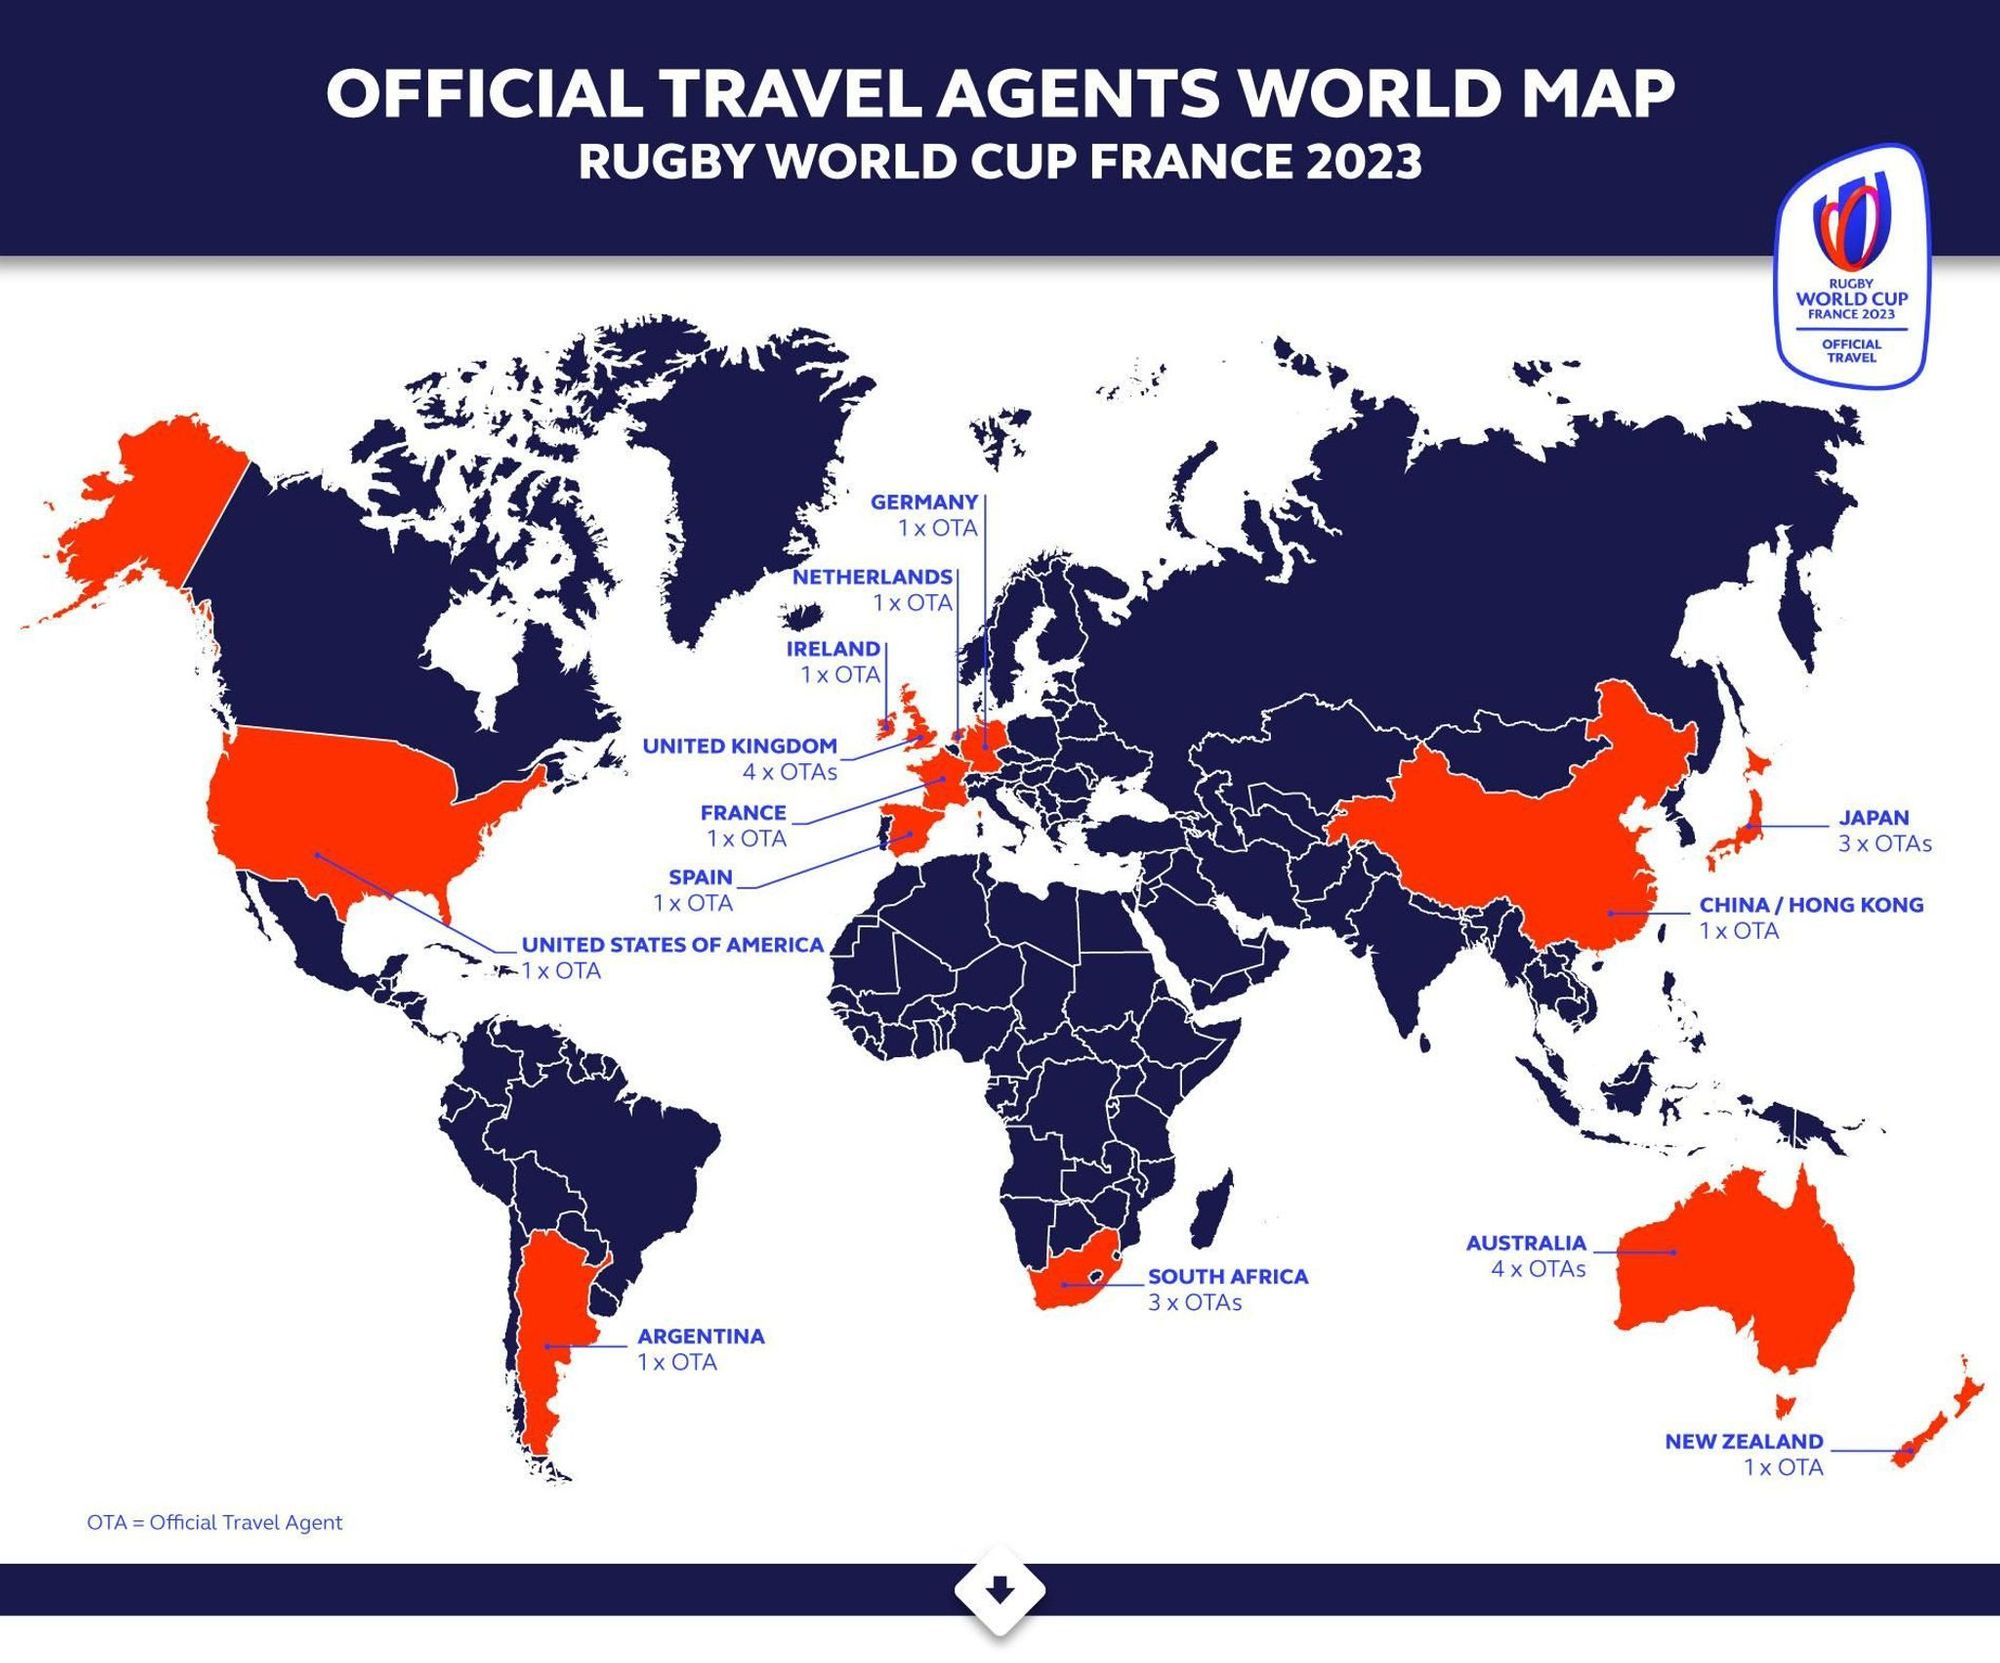 Rugby World Cup Agent Territories